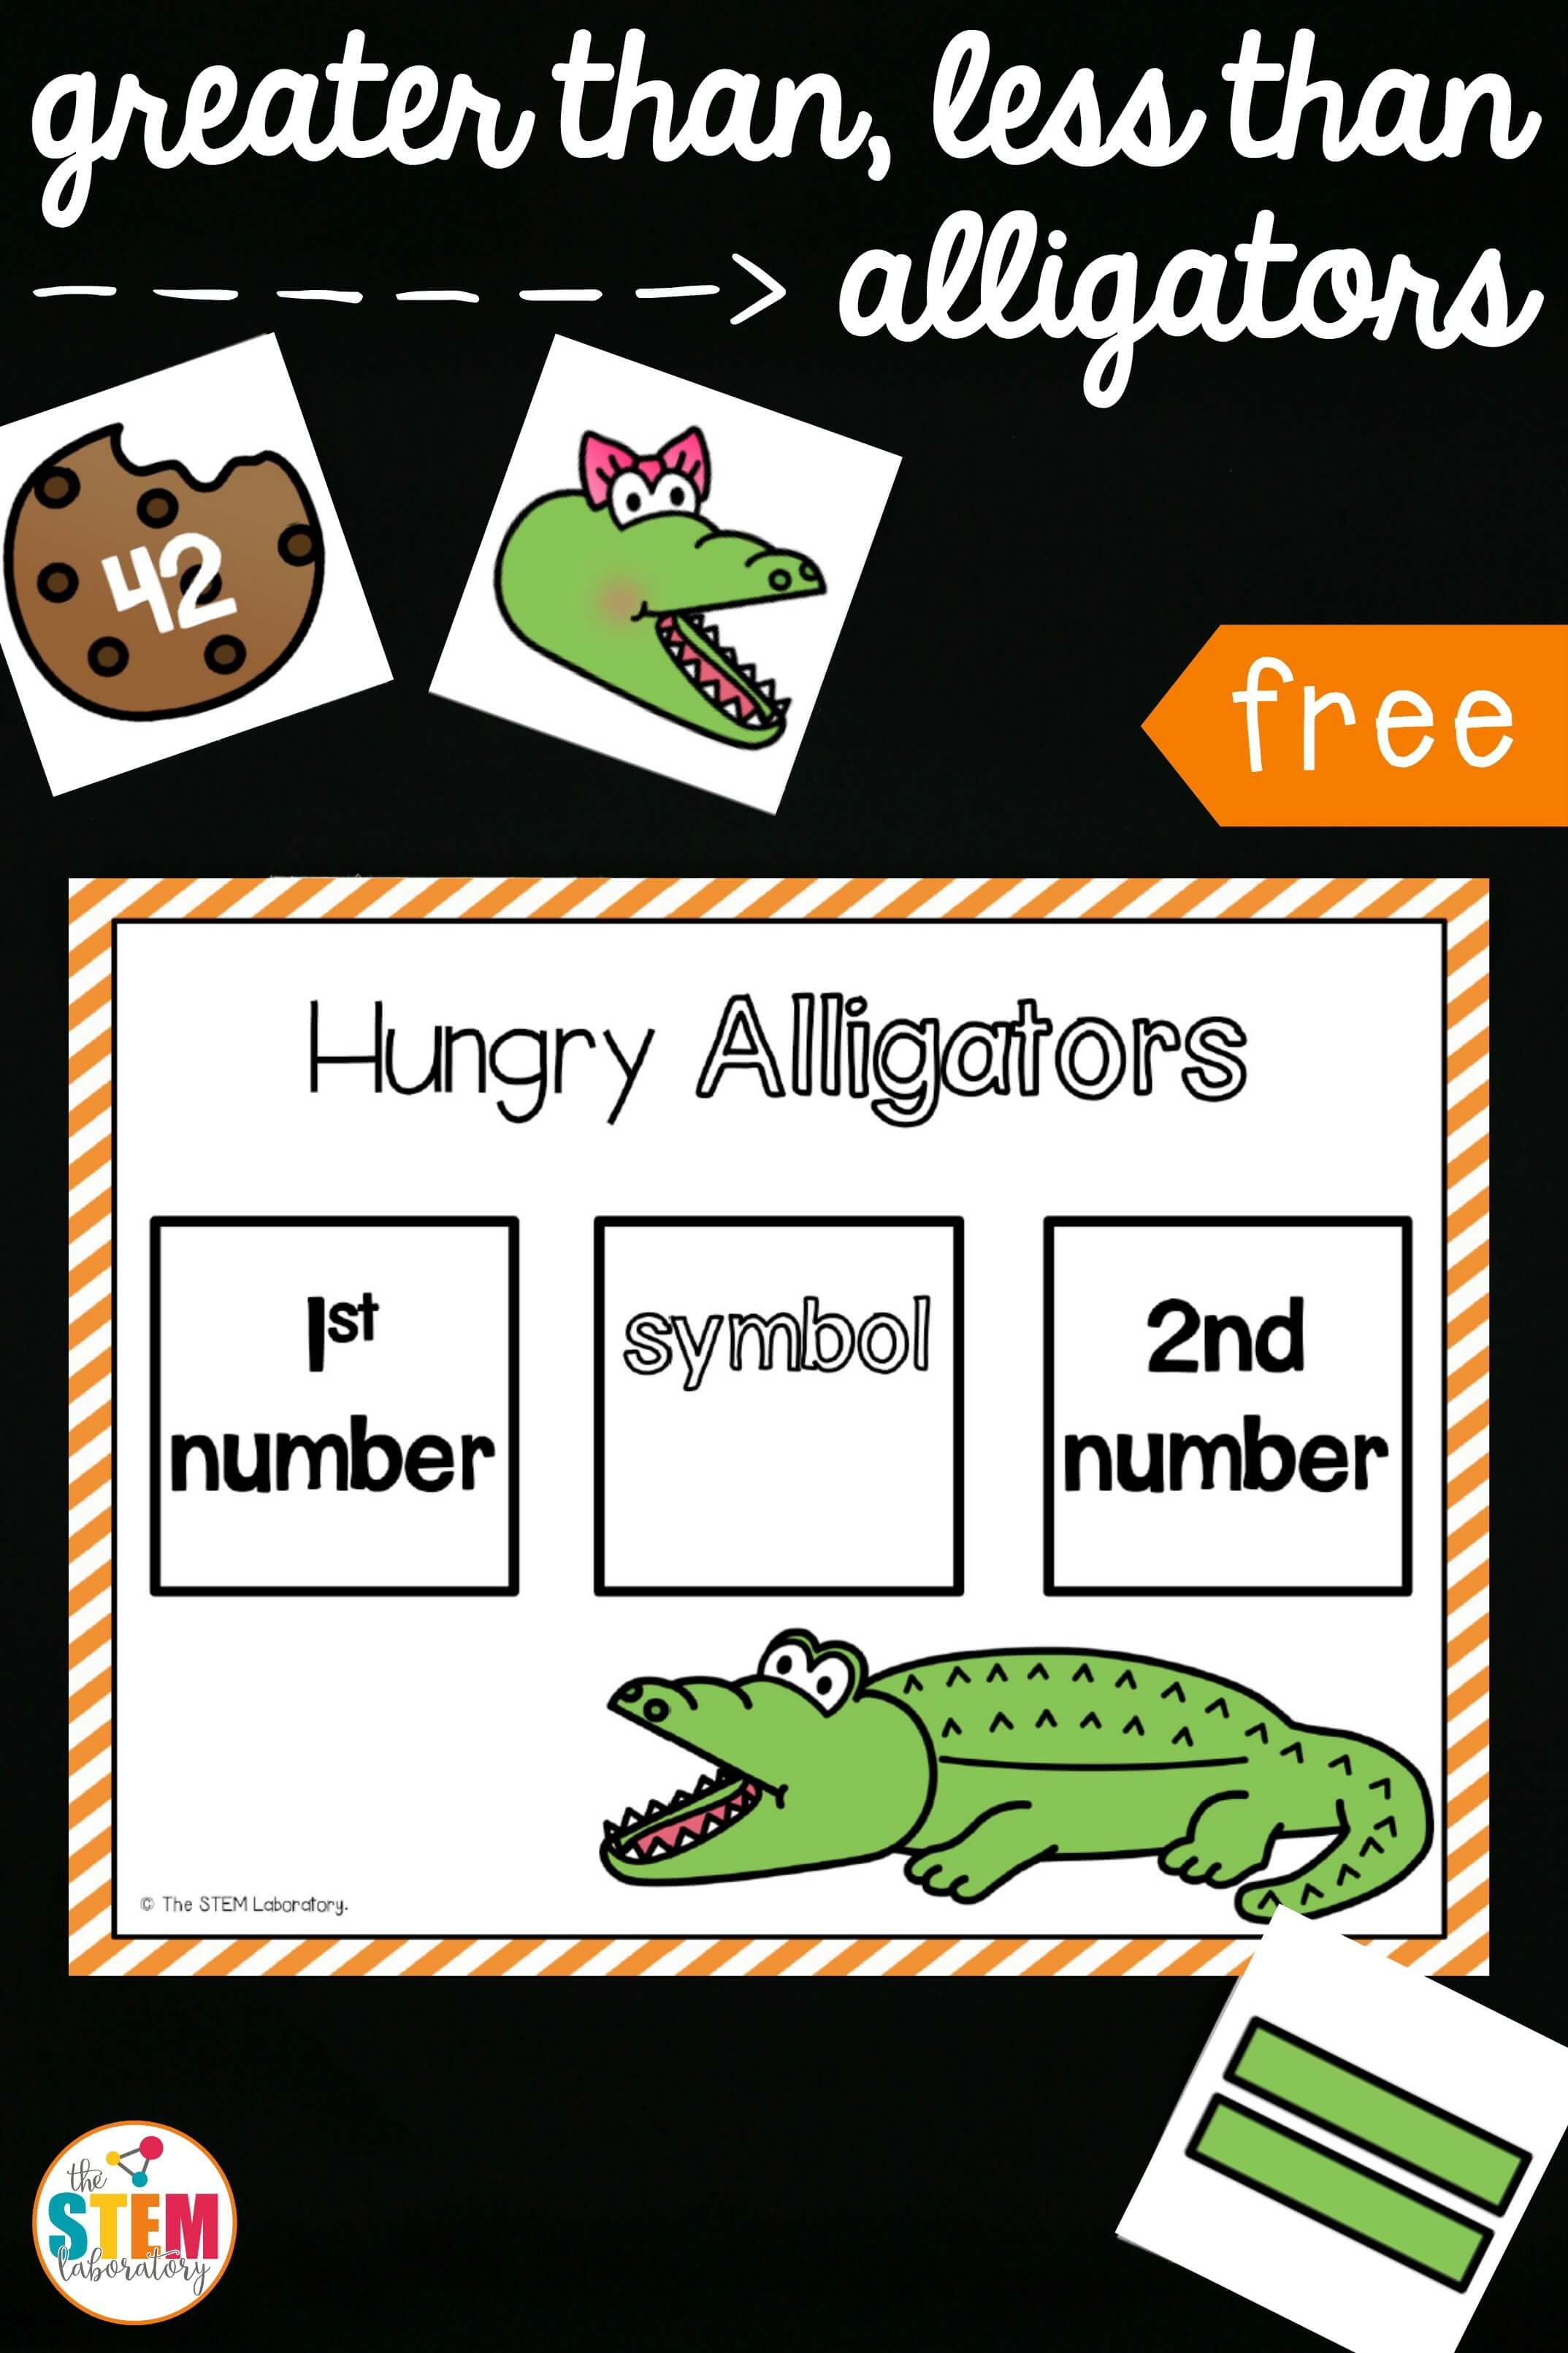 worksheet Greater Or Less Than greater than less alligators the stem laboratory